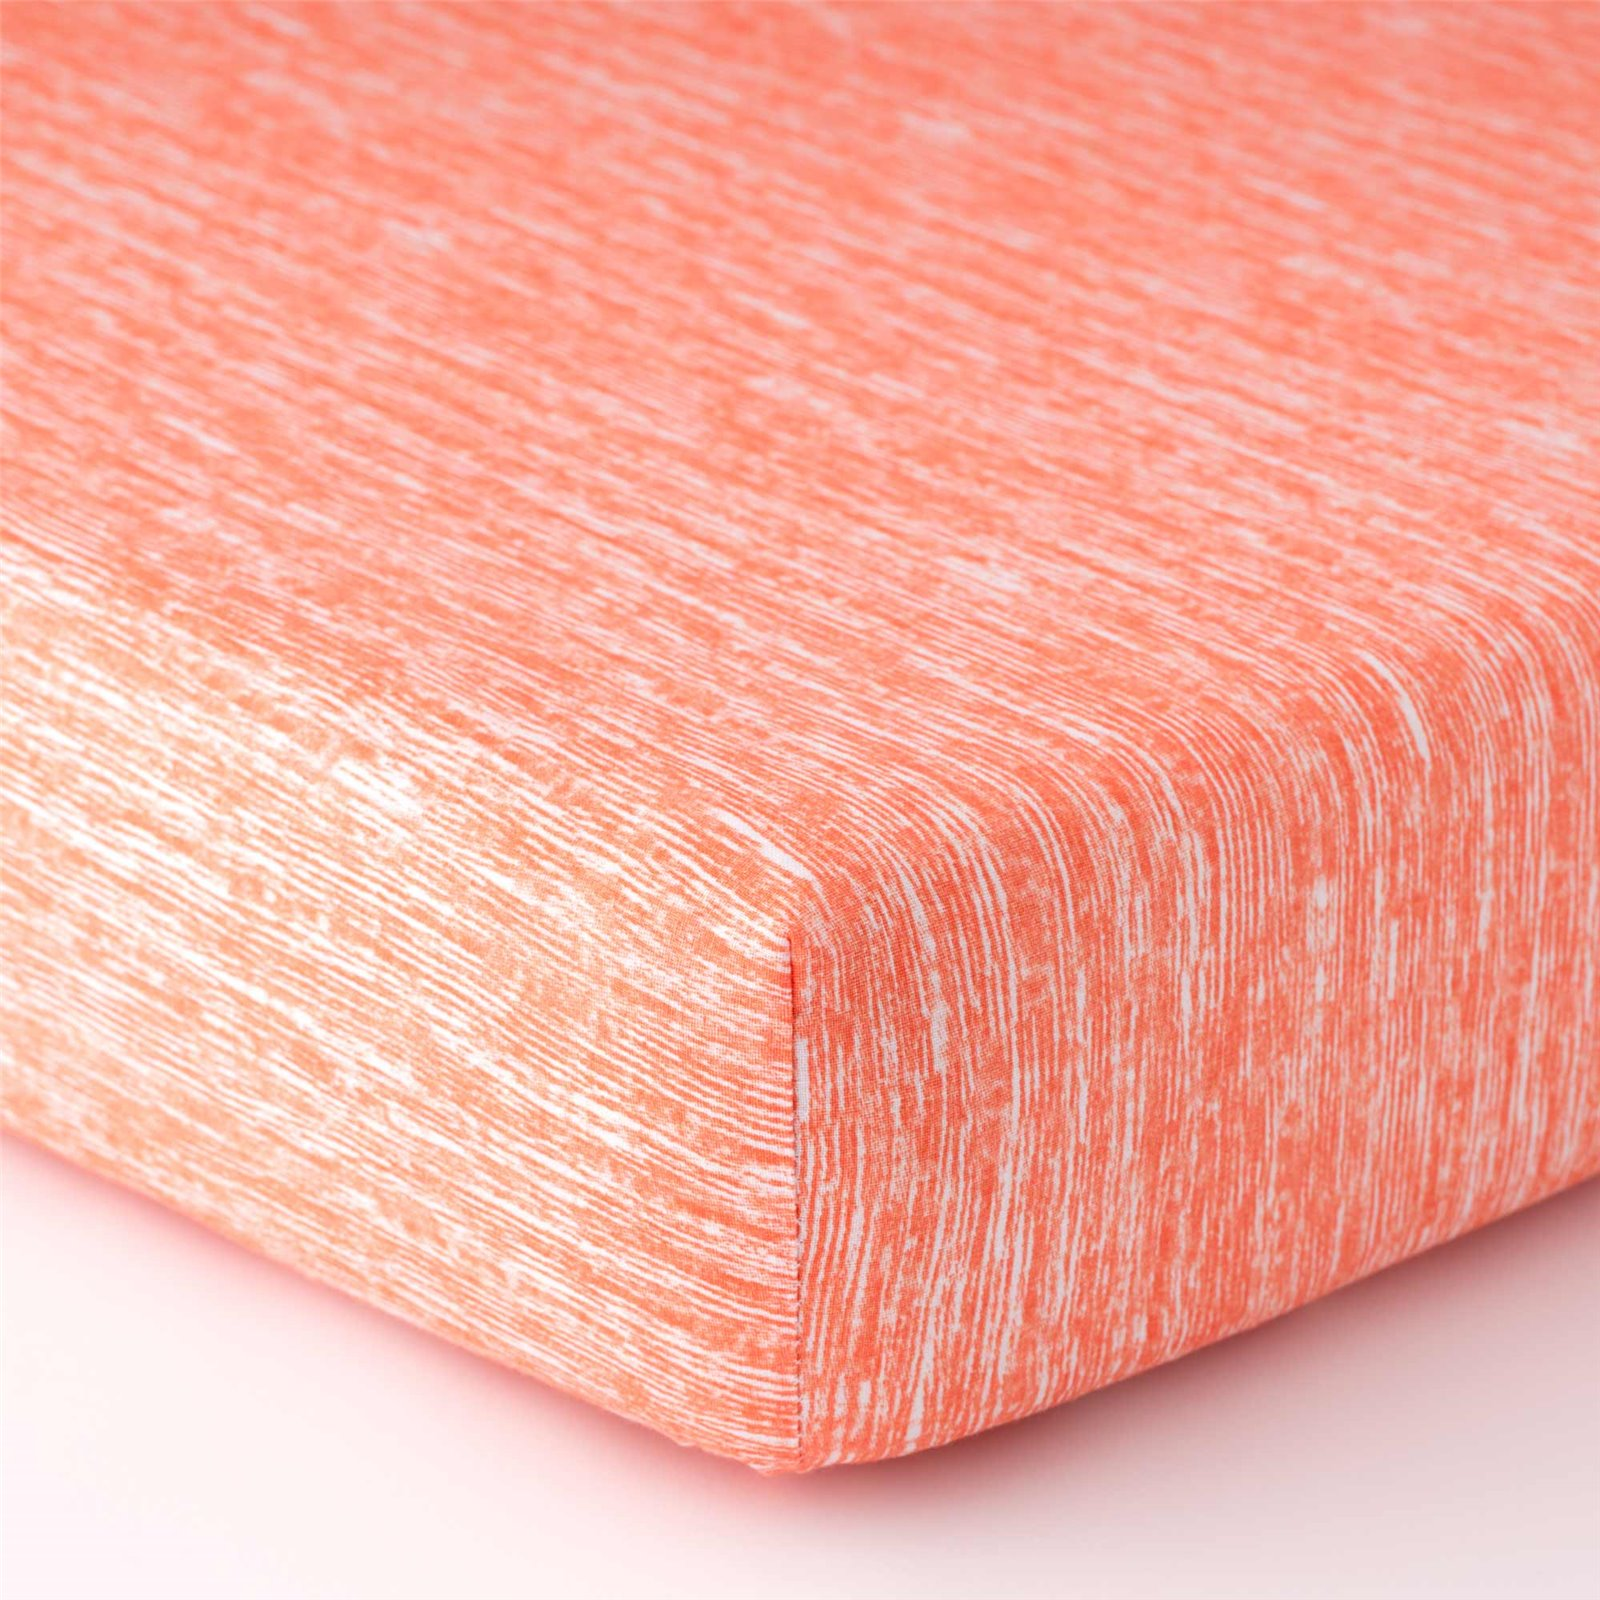 Solid color top sheet